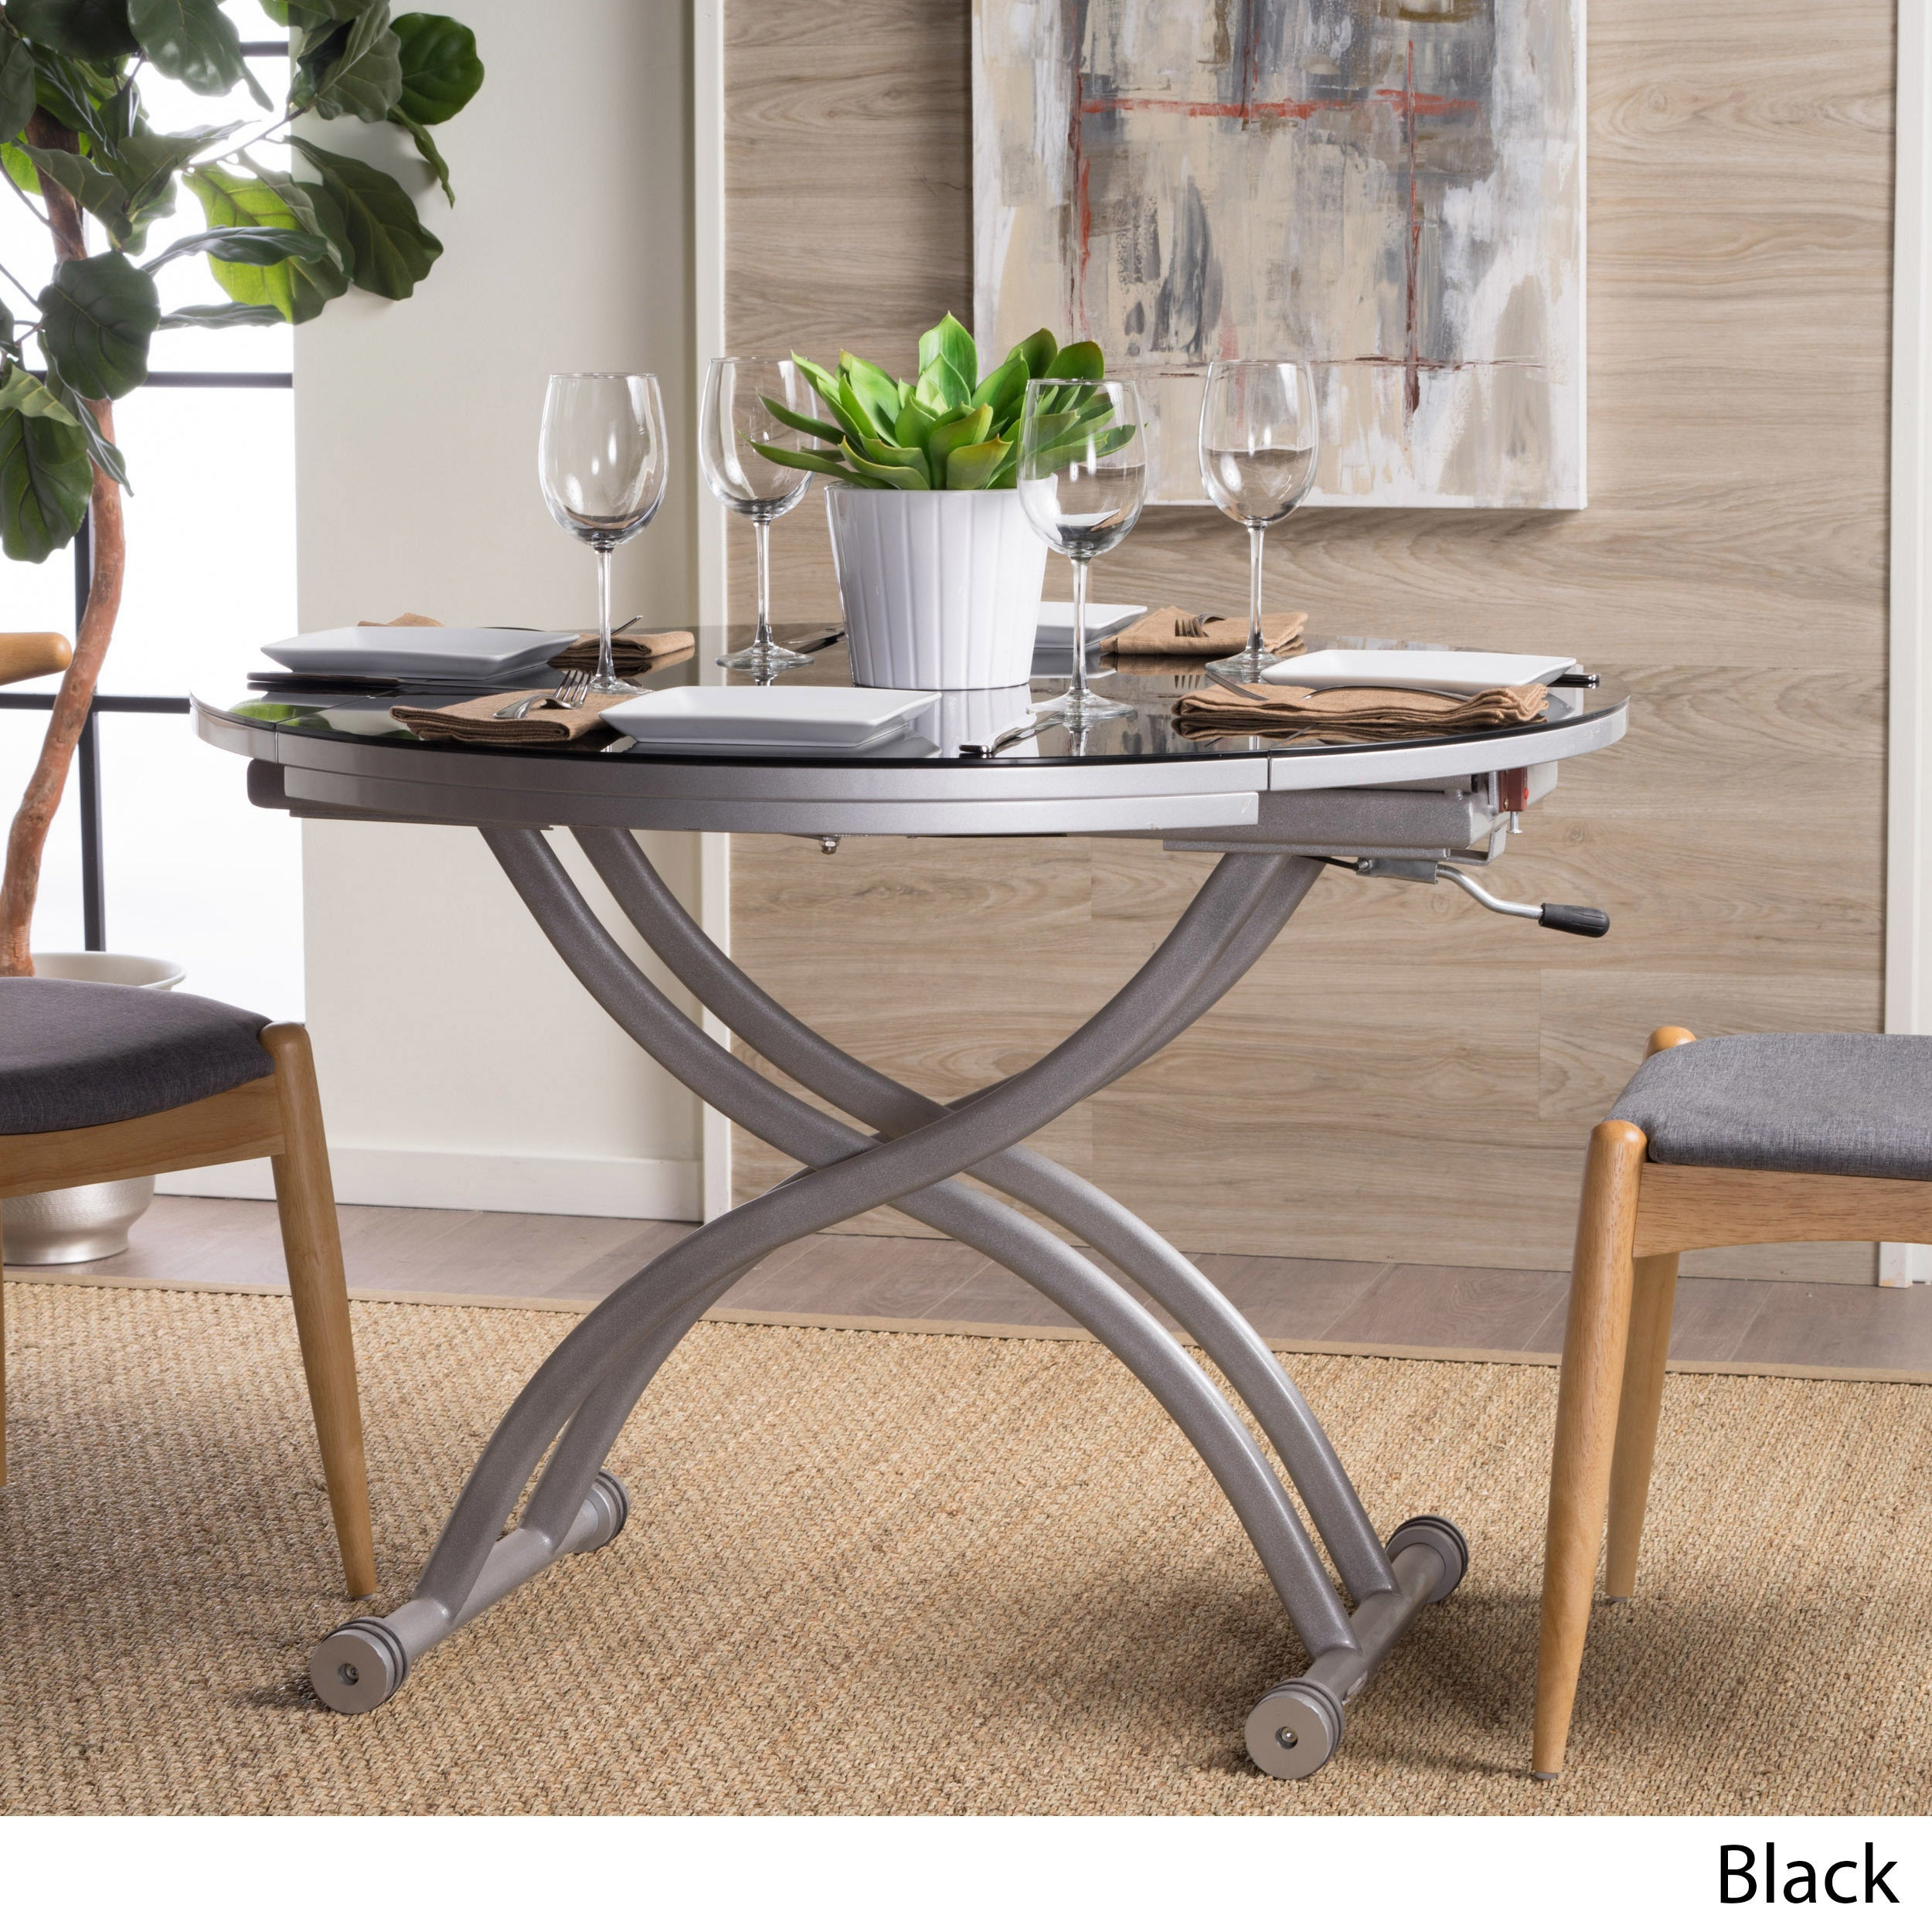 Shelby glass top folding table with drop leaf by christopher knight shelby glass top folding table with drop leaf by christopher knight home free shipping today overstock 17858754 watchthetrailerfo